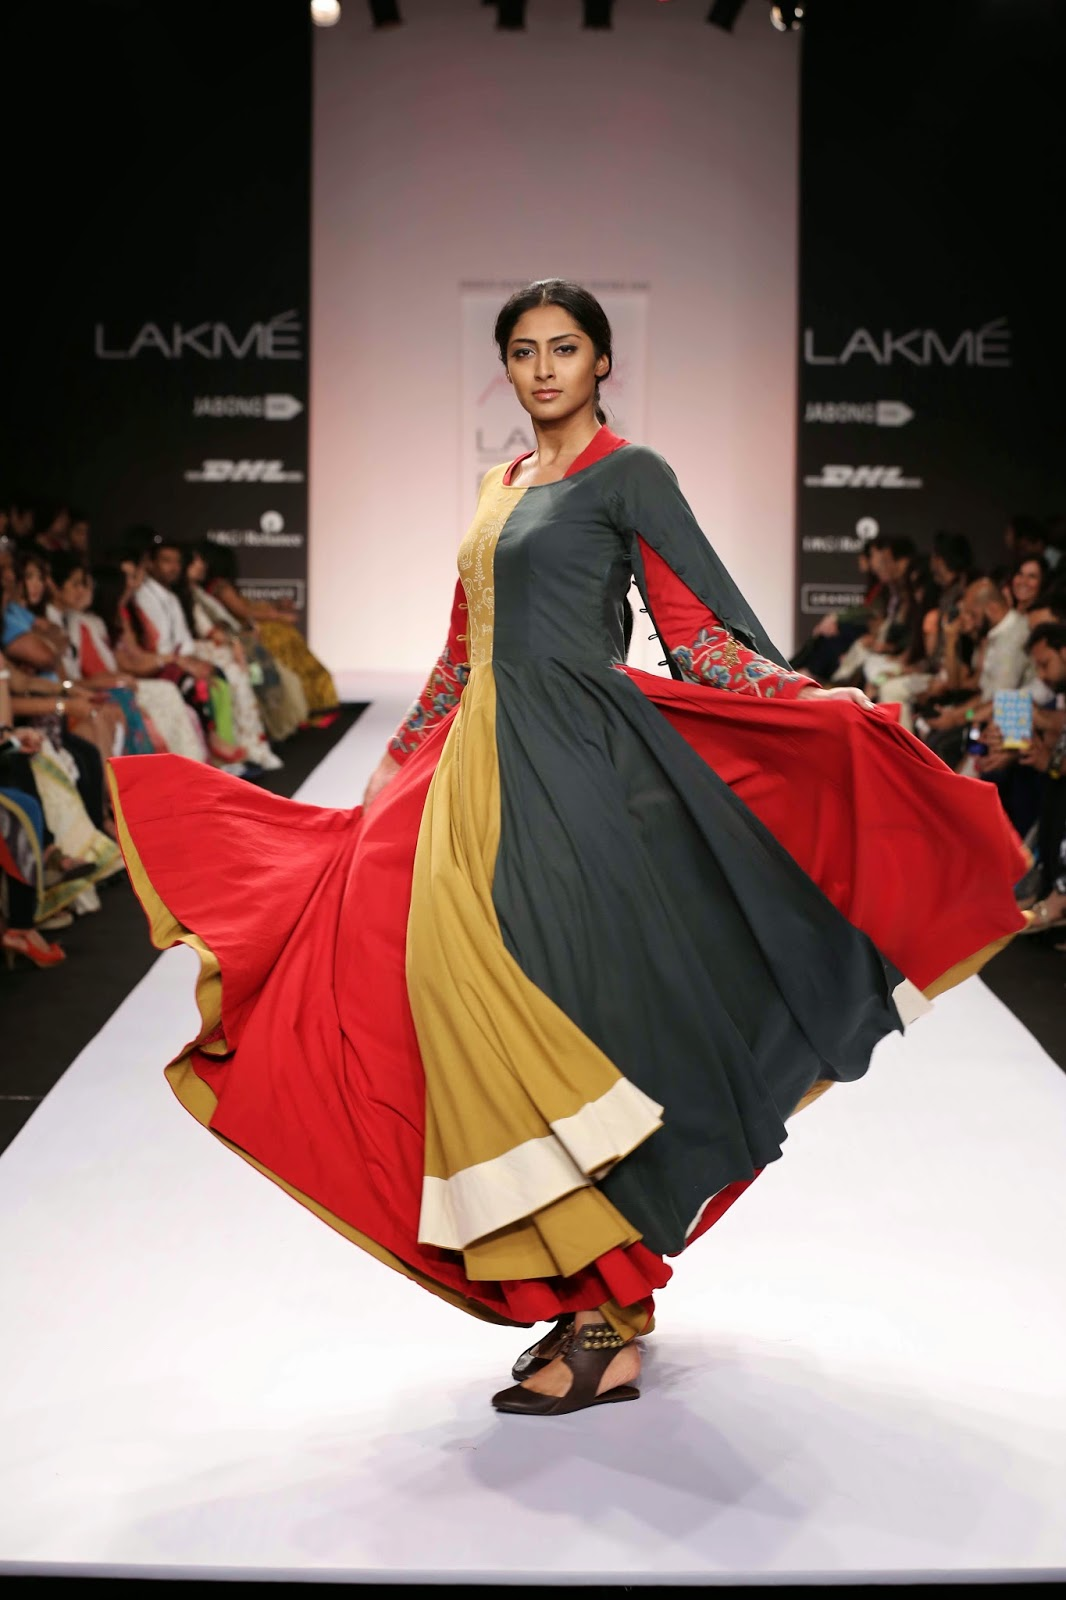 The show opened with two majestic full circle floor length gowns with a marked Lambadi touch. Soon flared minis, long sleeved collared kurtas, waisted black dress with print/embellishment and kedia inspired tops swirled down the catwalk.